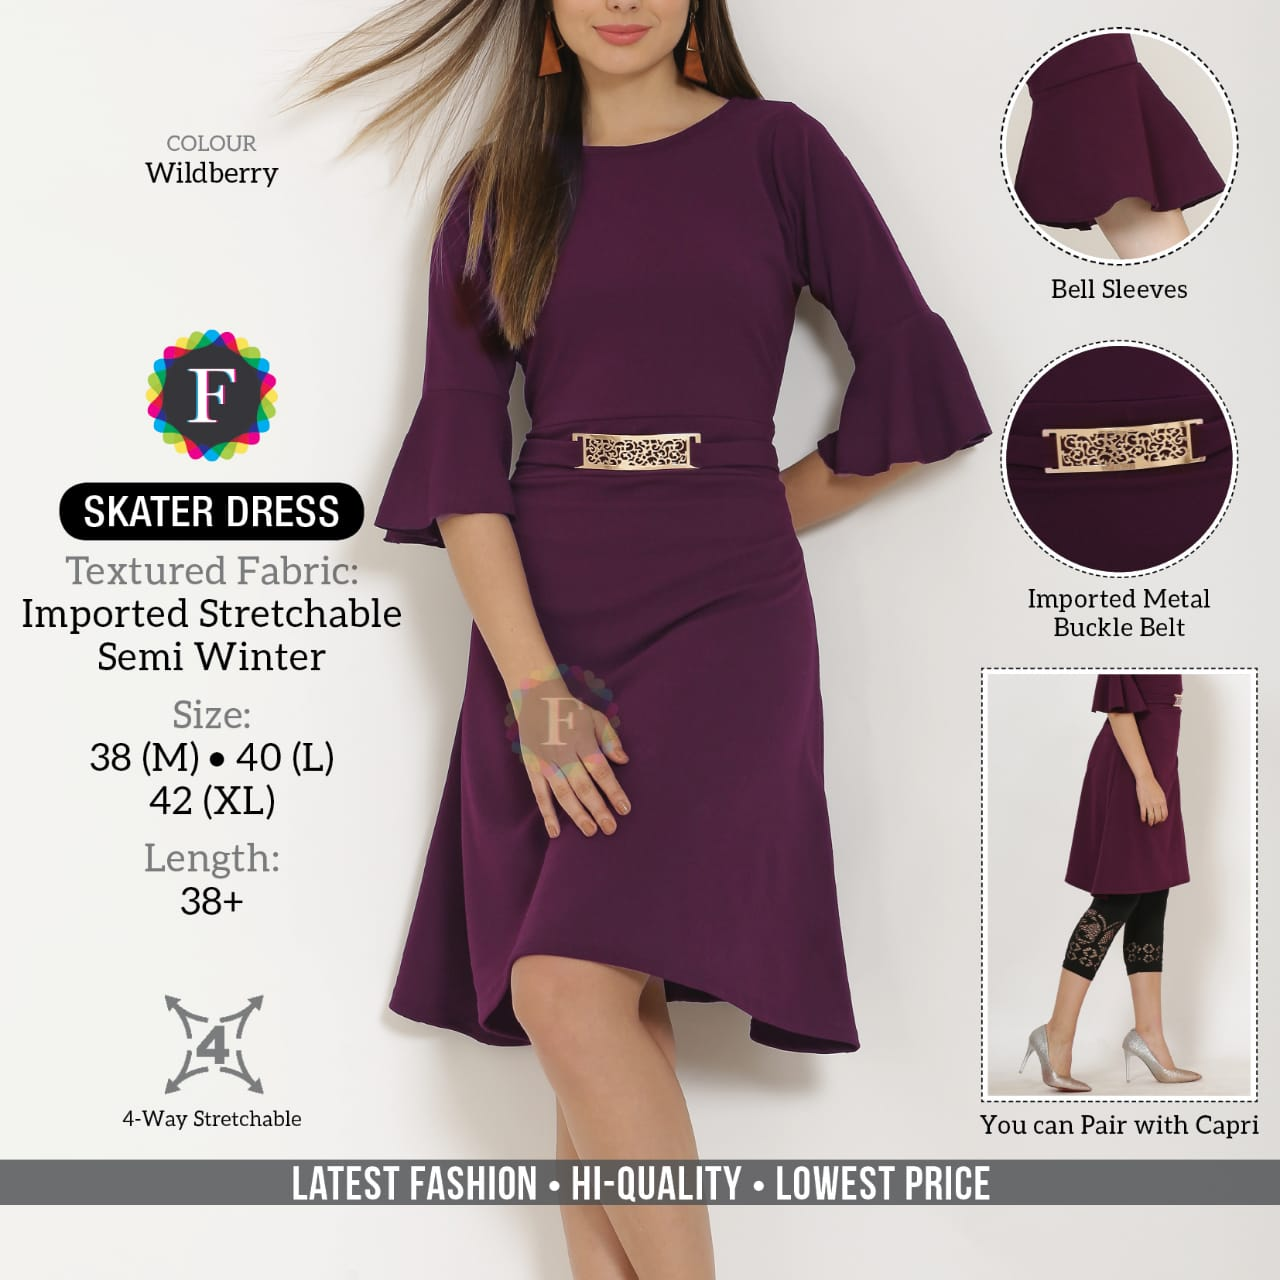 Skater Dress Imported Stretchable Western Wear Tops Wholesaler In Surat